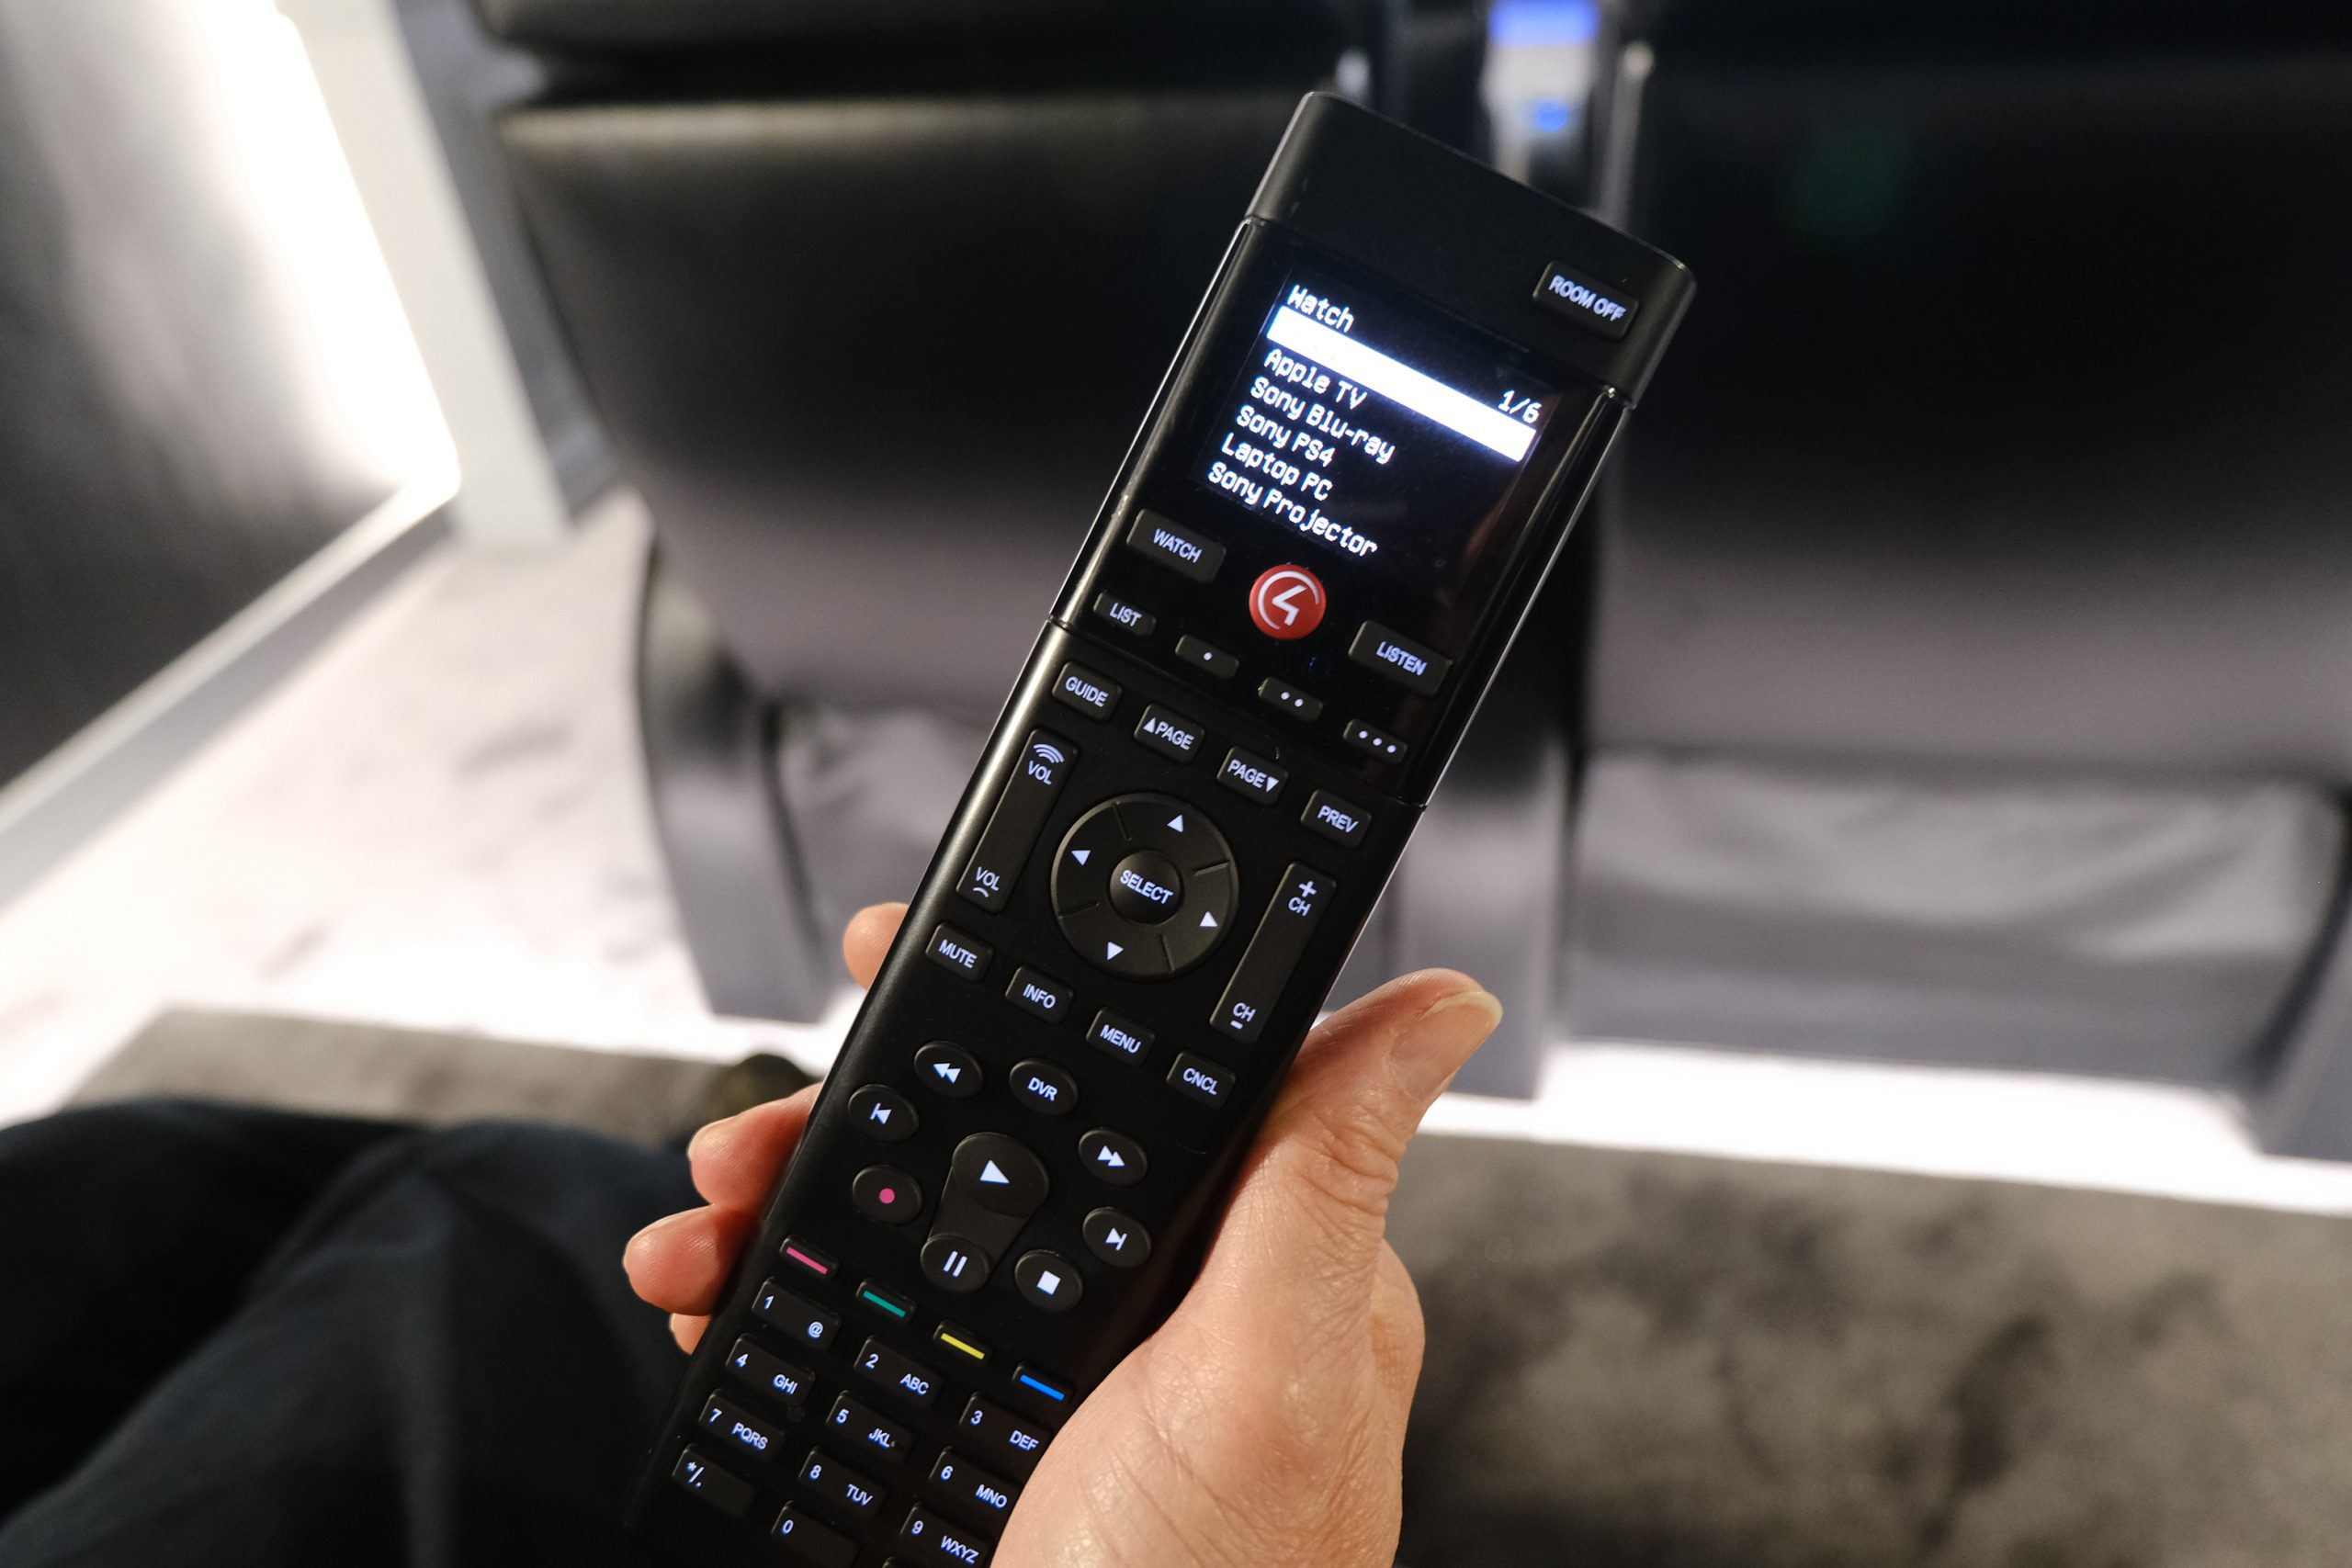 Control4 Home Cinema remote control